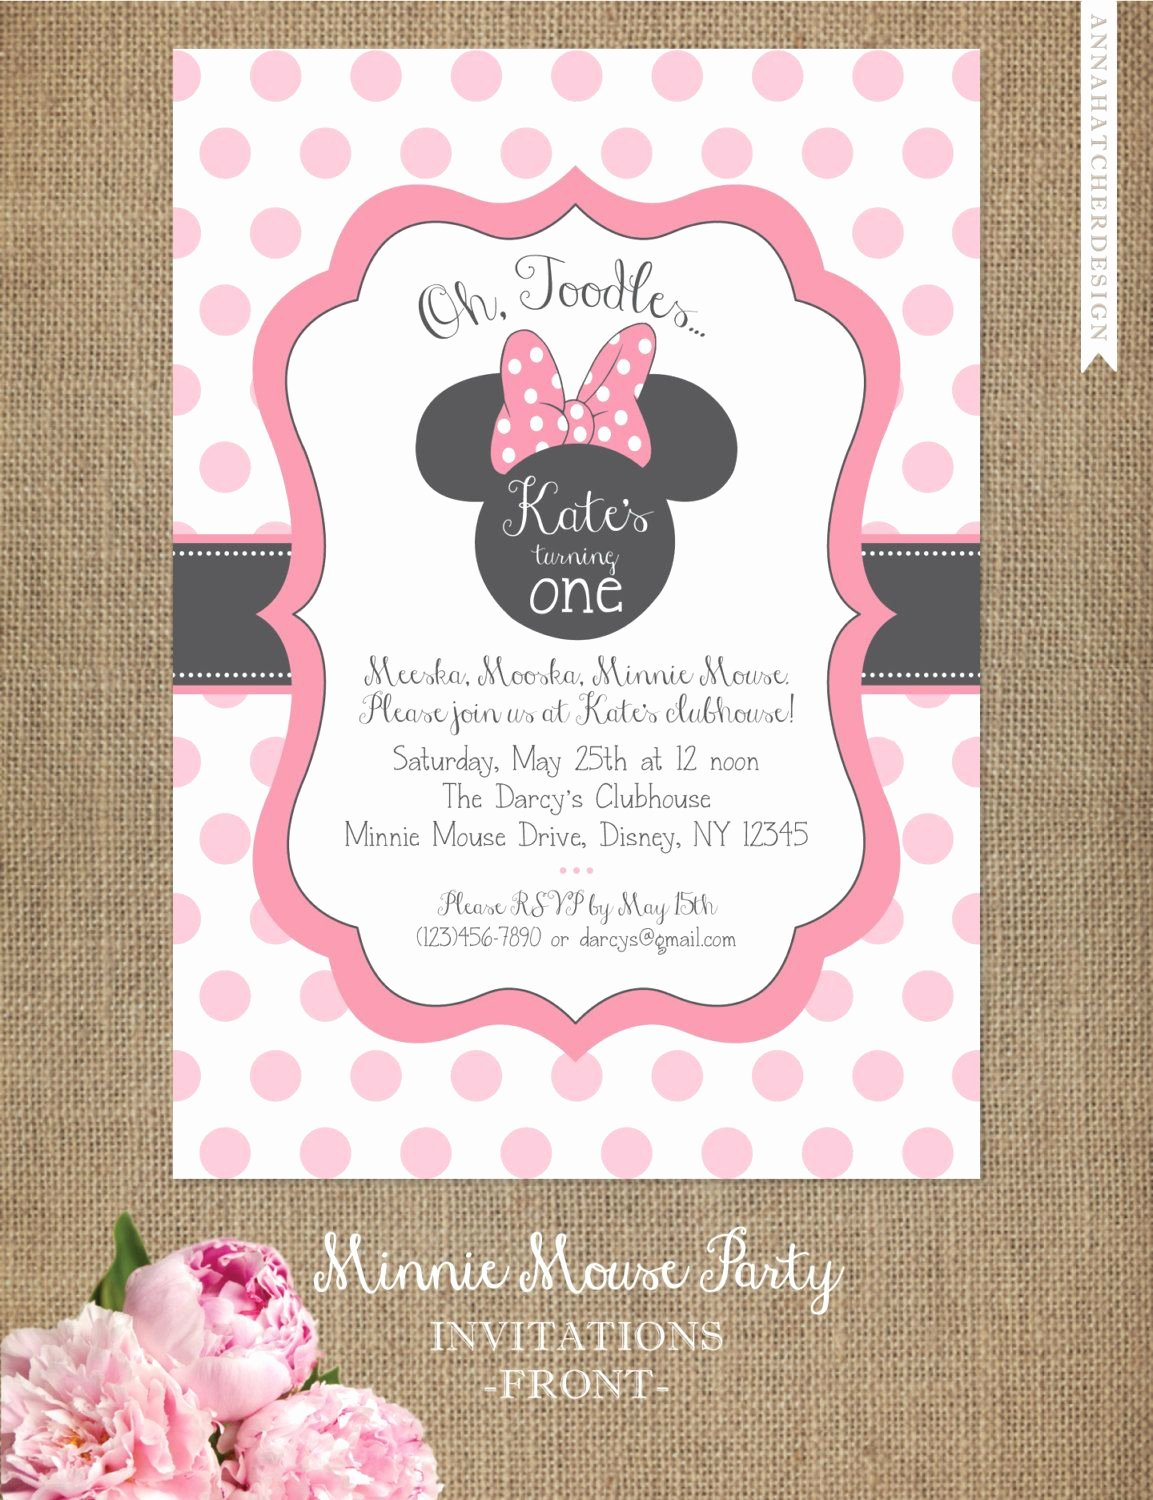 Free Minnie Mouse Invitations Beautiful Minnie Mouse Invitation Editable Birthday Invitation